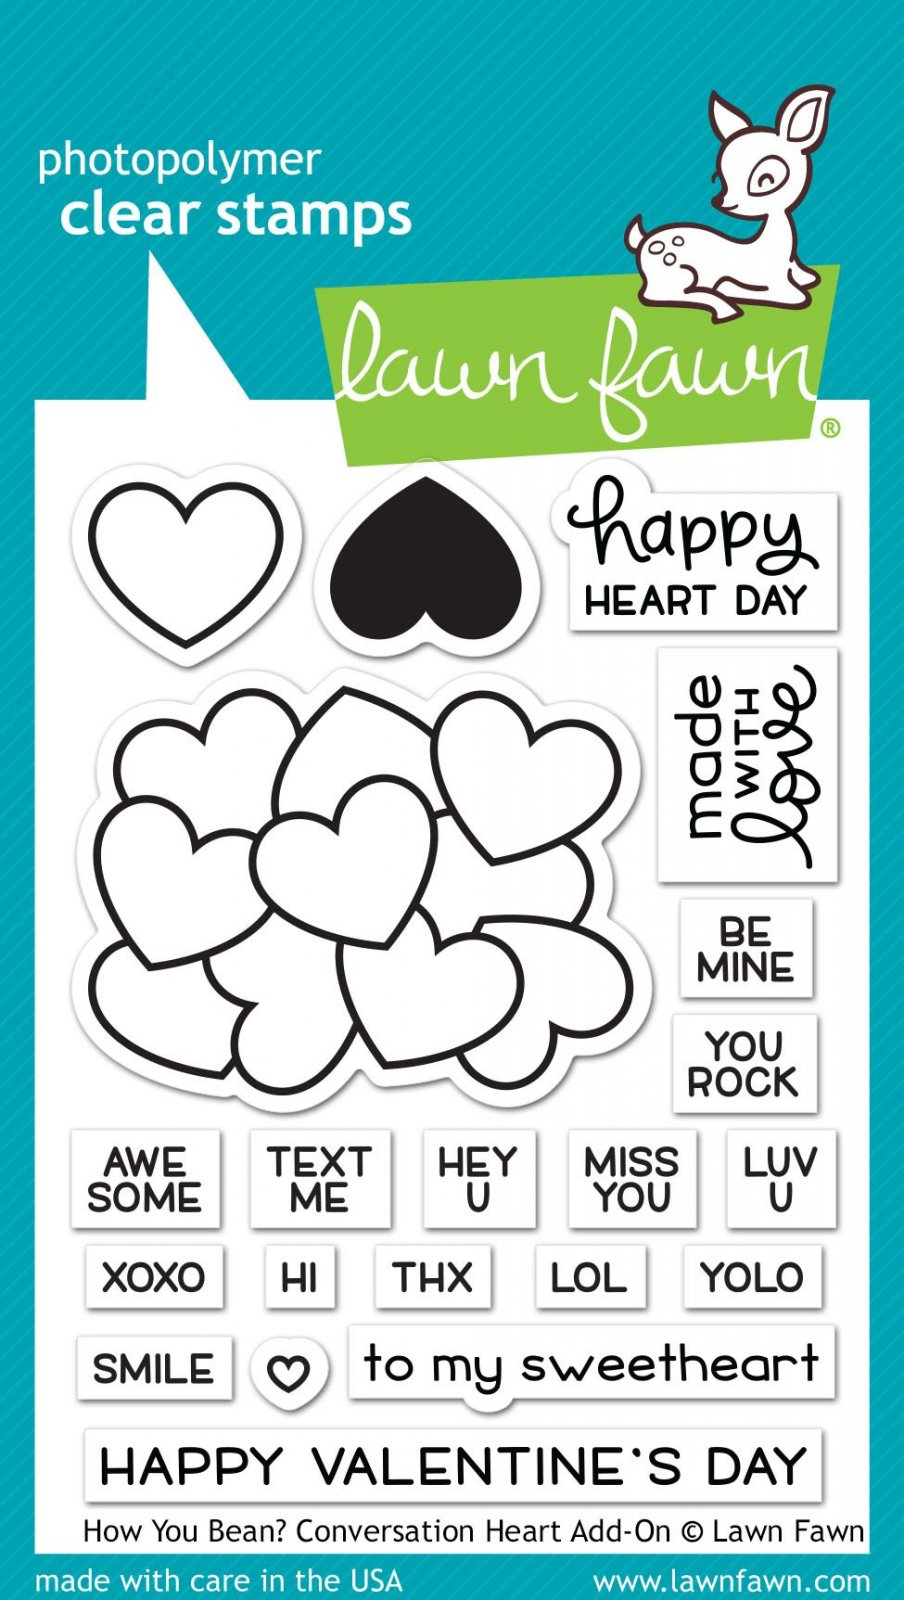 Lawn Fawn - How You Bean? Conversation Heart Add On Stamp Set